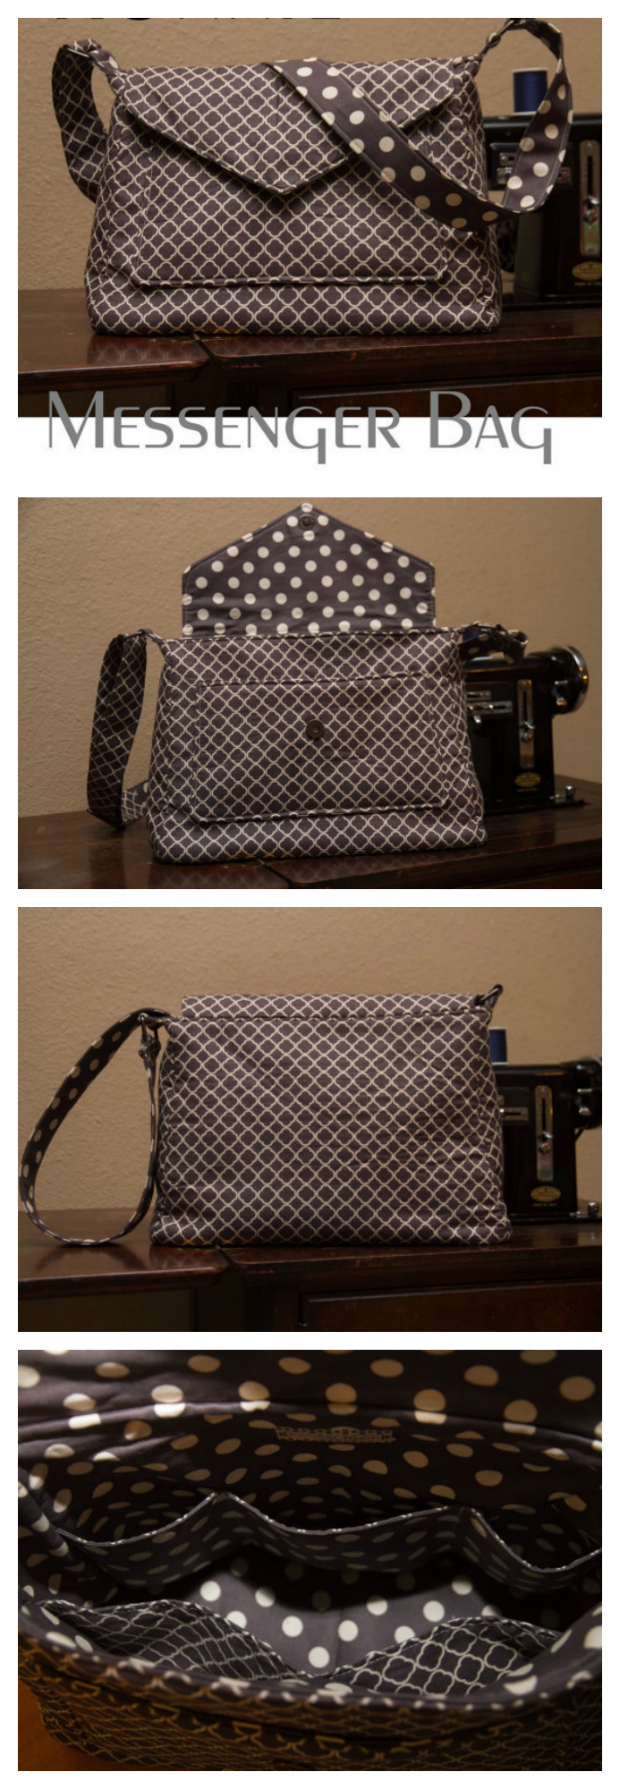 """The Ronnie Messenger bag is aimed at an advanced beginner sewer and is an easy bag to make. Ronny is roomy and has lots of pockets meaning it can store all your necessary items. When finished Ronnie is 11 1/2"""" wide at the top, 13"""" wide at the bottom, 9 1/2"""" tall and 5"""" deep."""